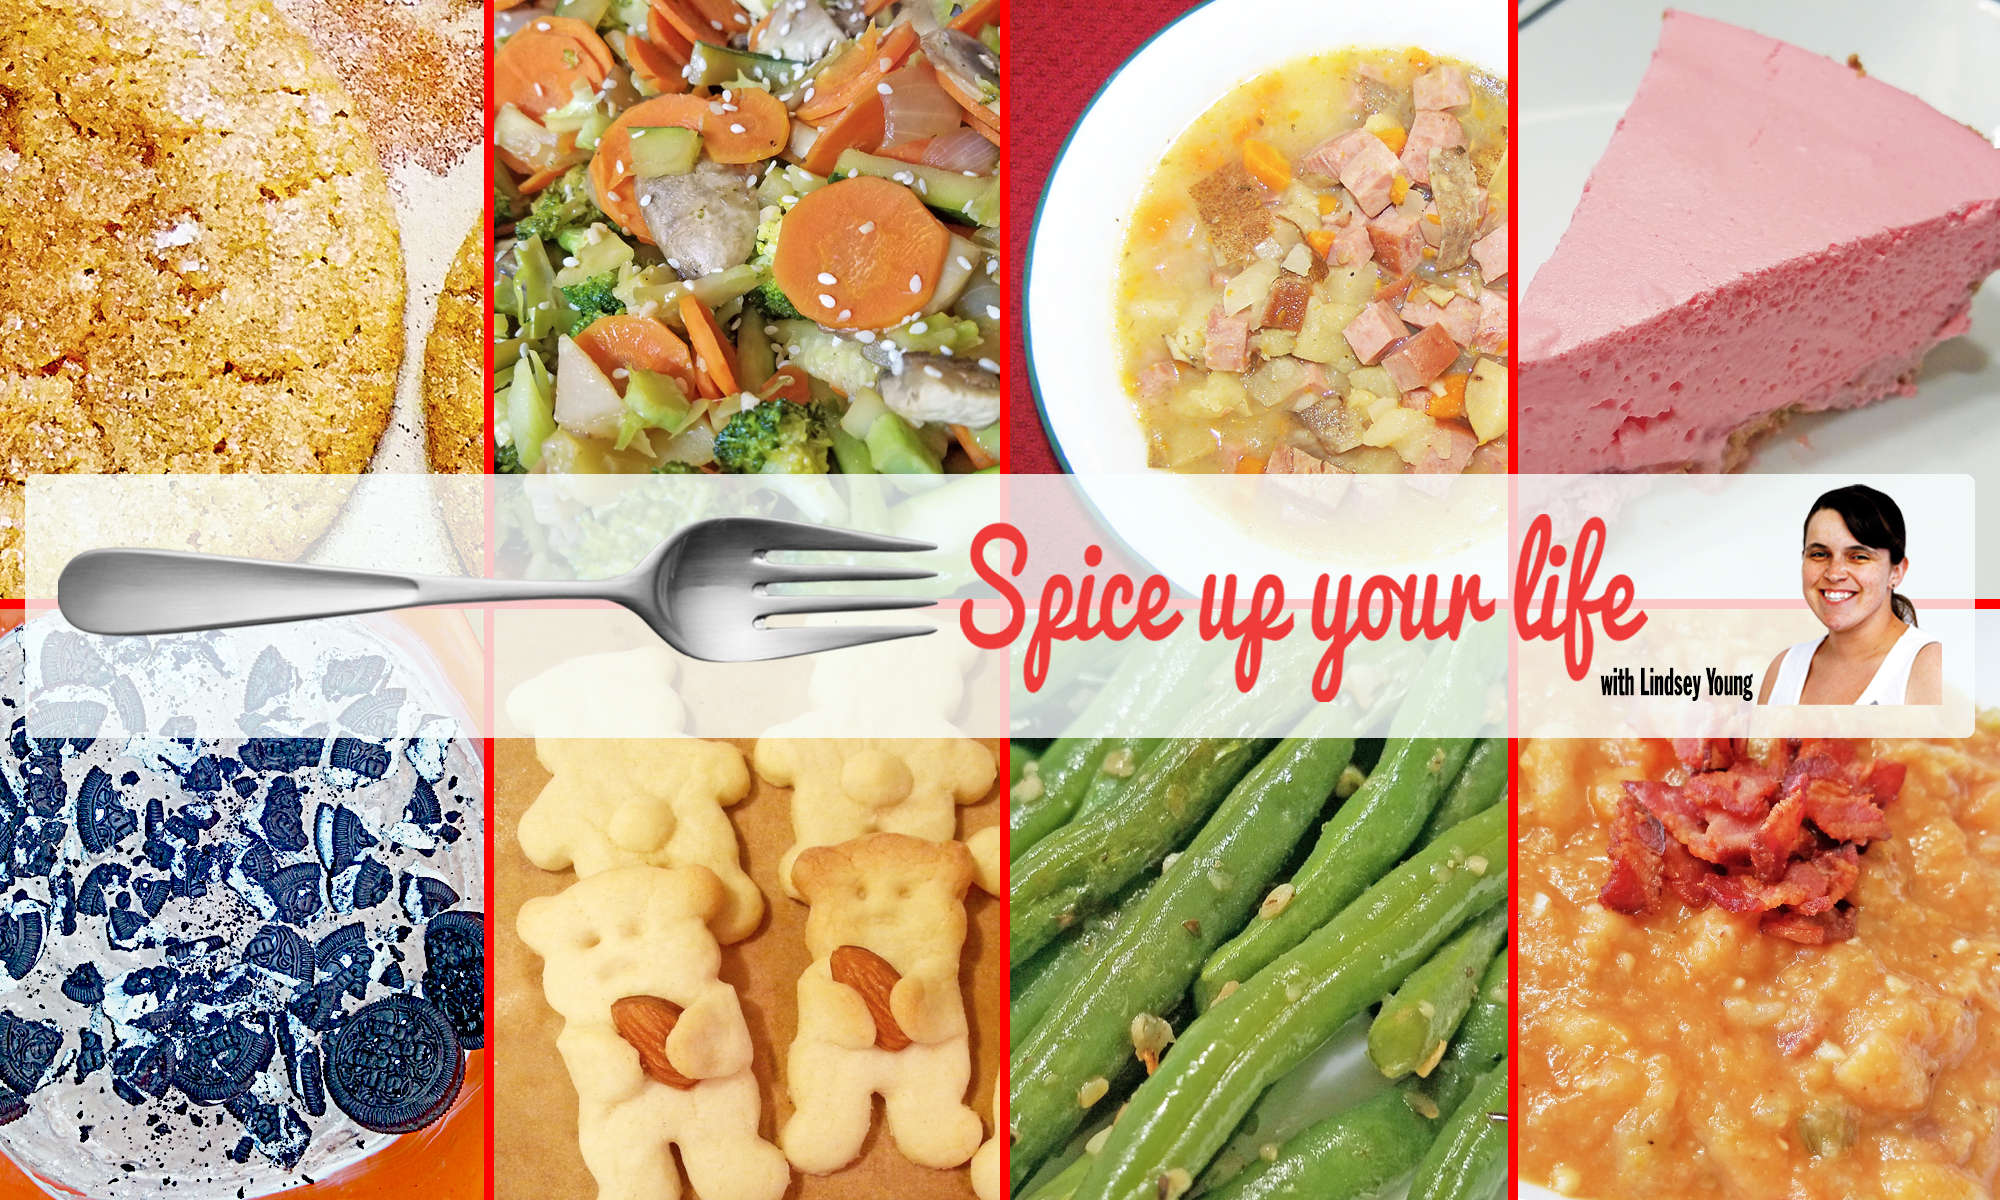 Spice Up Your Life